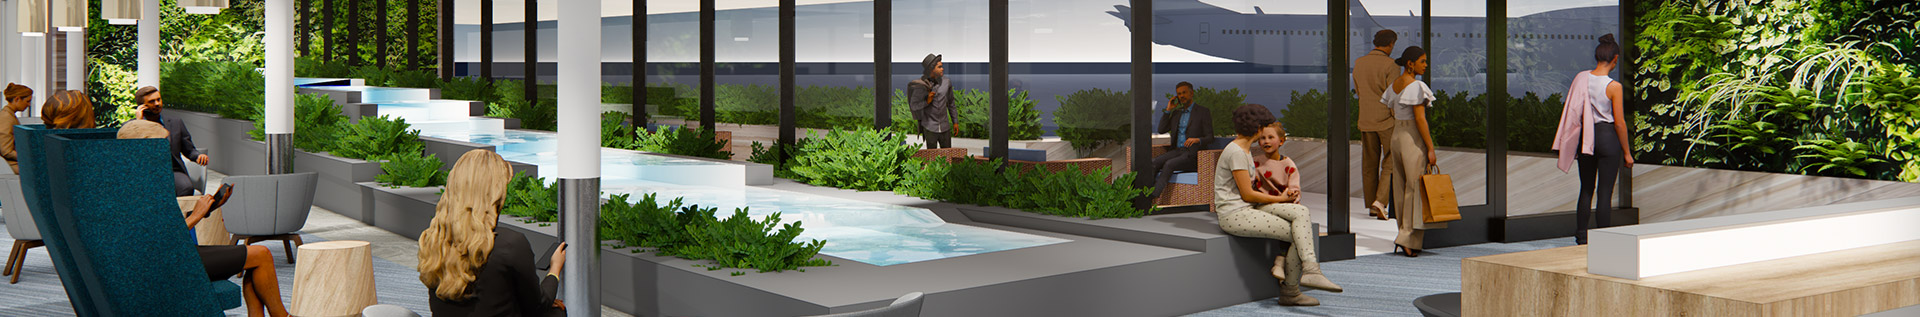 Quad City Airport Render with Water Feature